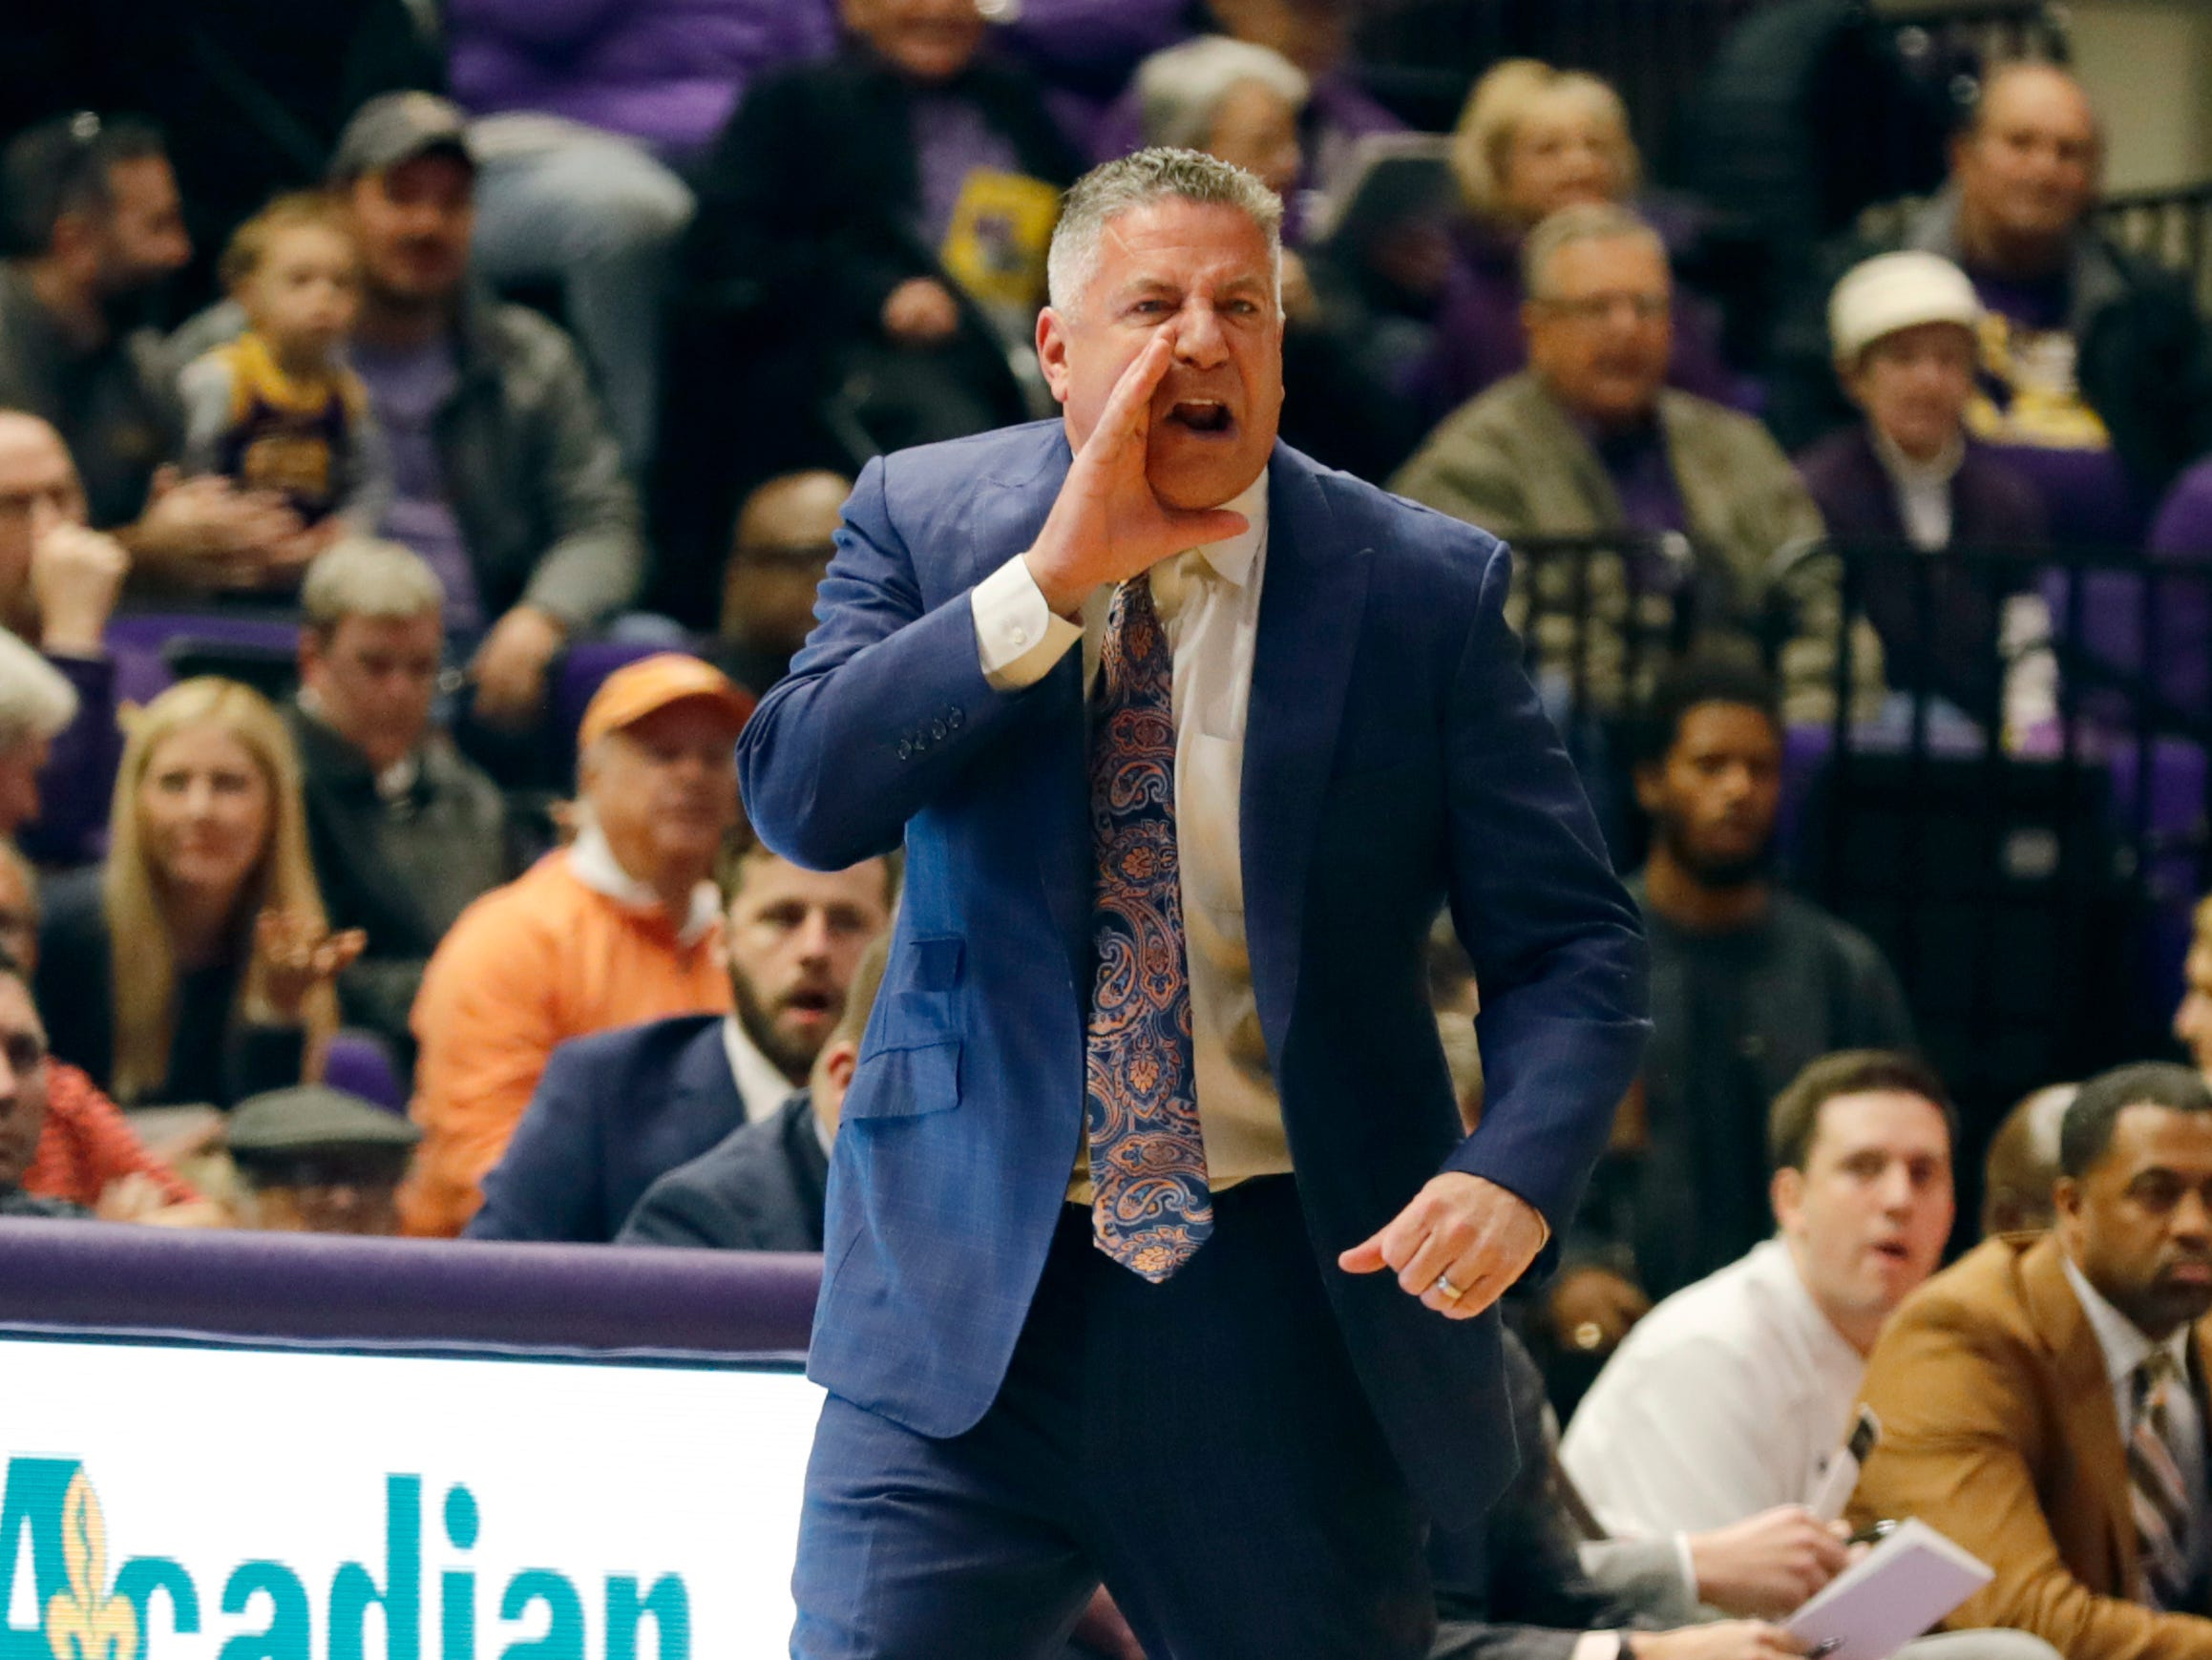 Feb 9, 2019; Baton Rouge, LA, USA; Auburn Tigers head coach Bruce Pearl yells at his players from the bench against LSU Tigers in the first half at Maravich Assembly Center. Mandatory Credit: Stephen Lew-USA TODAY Sports